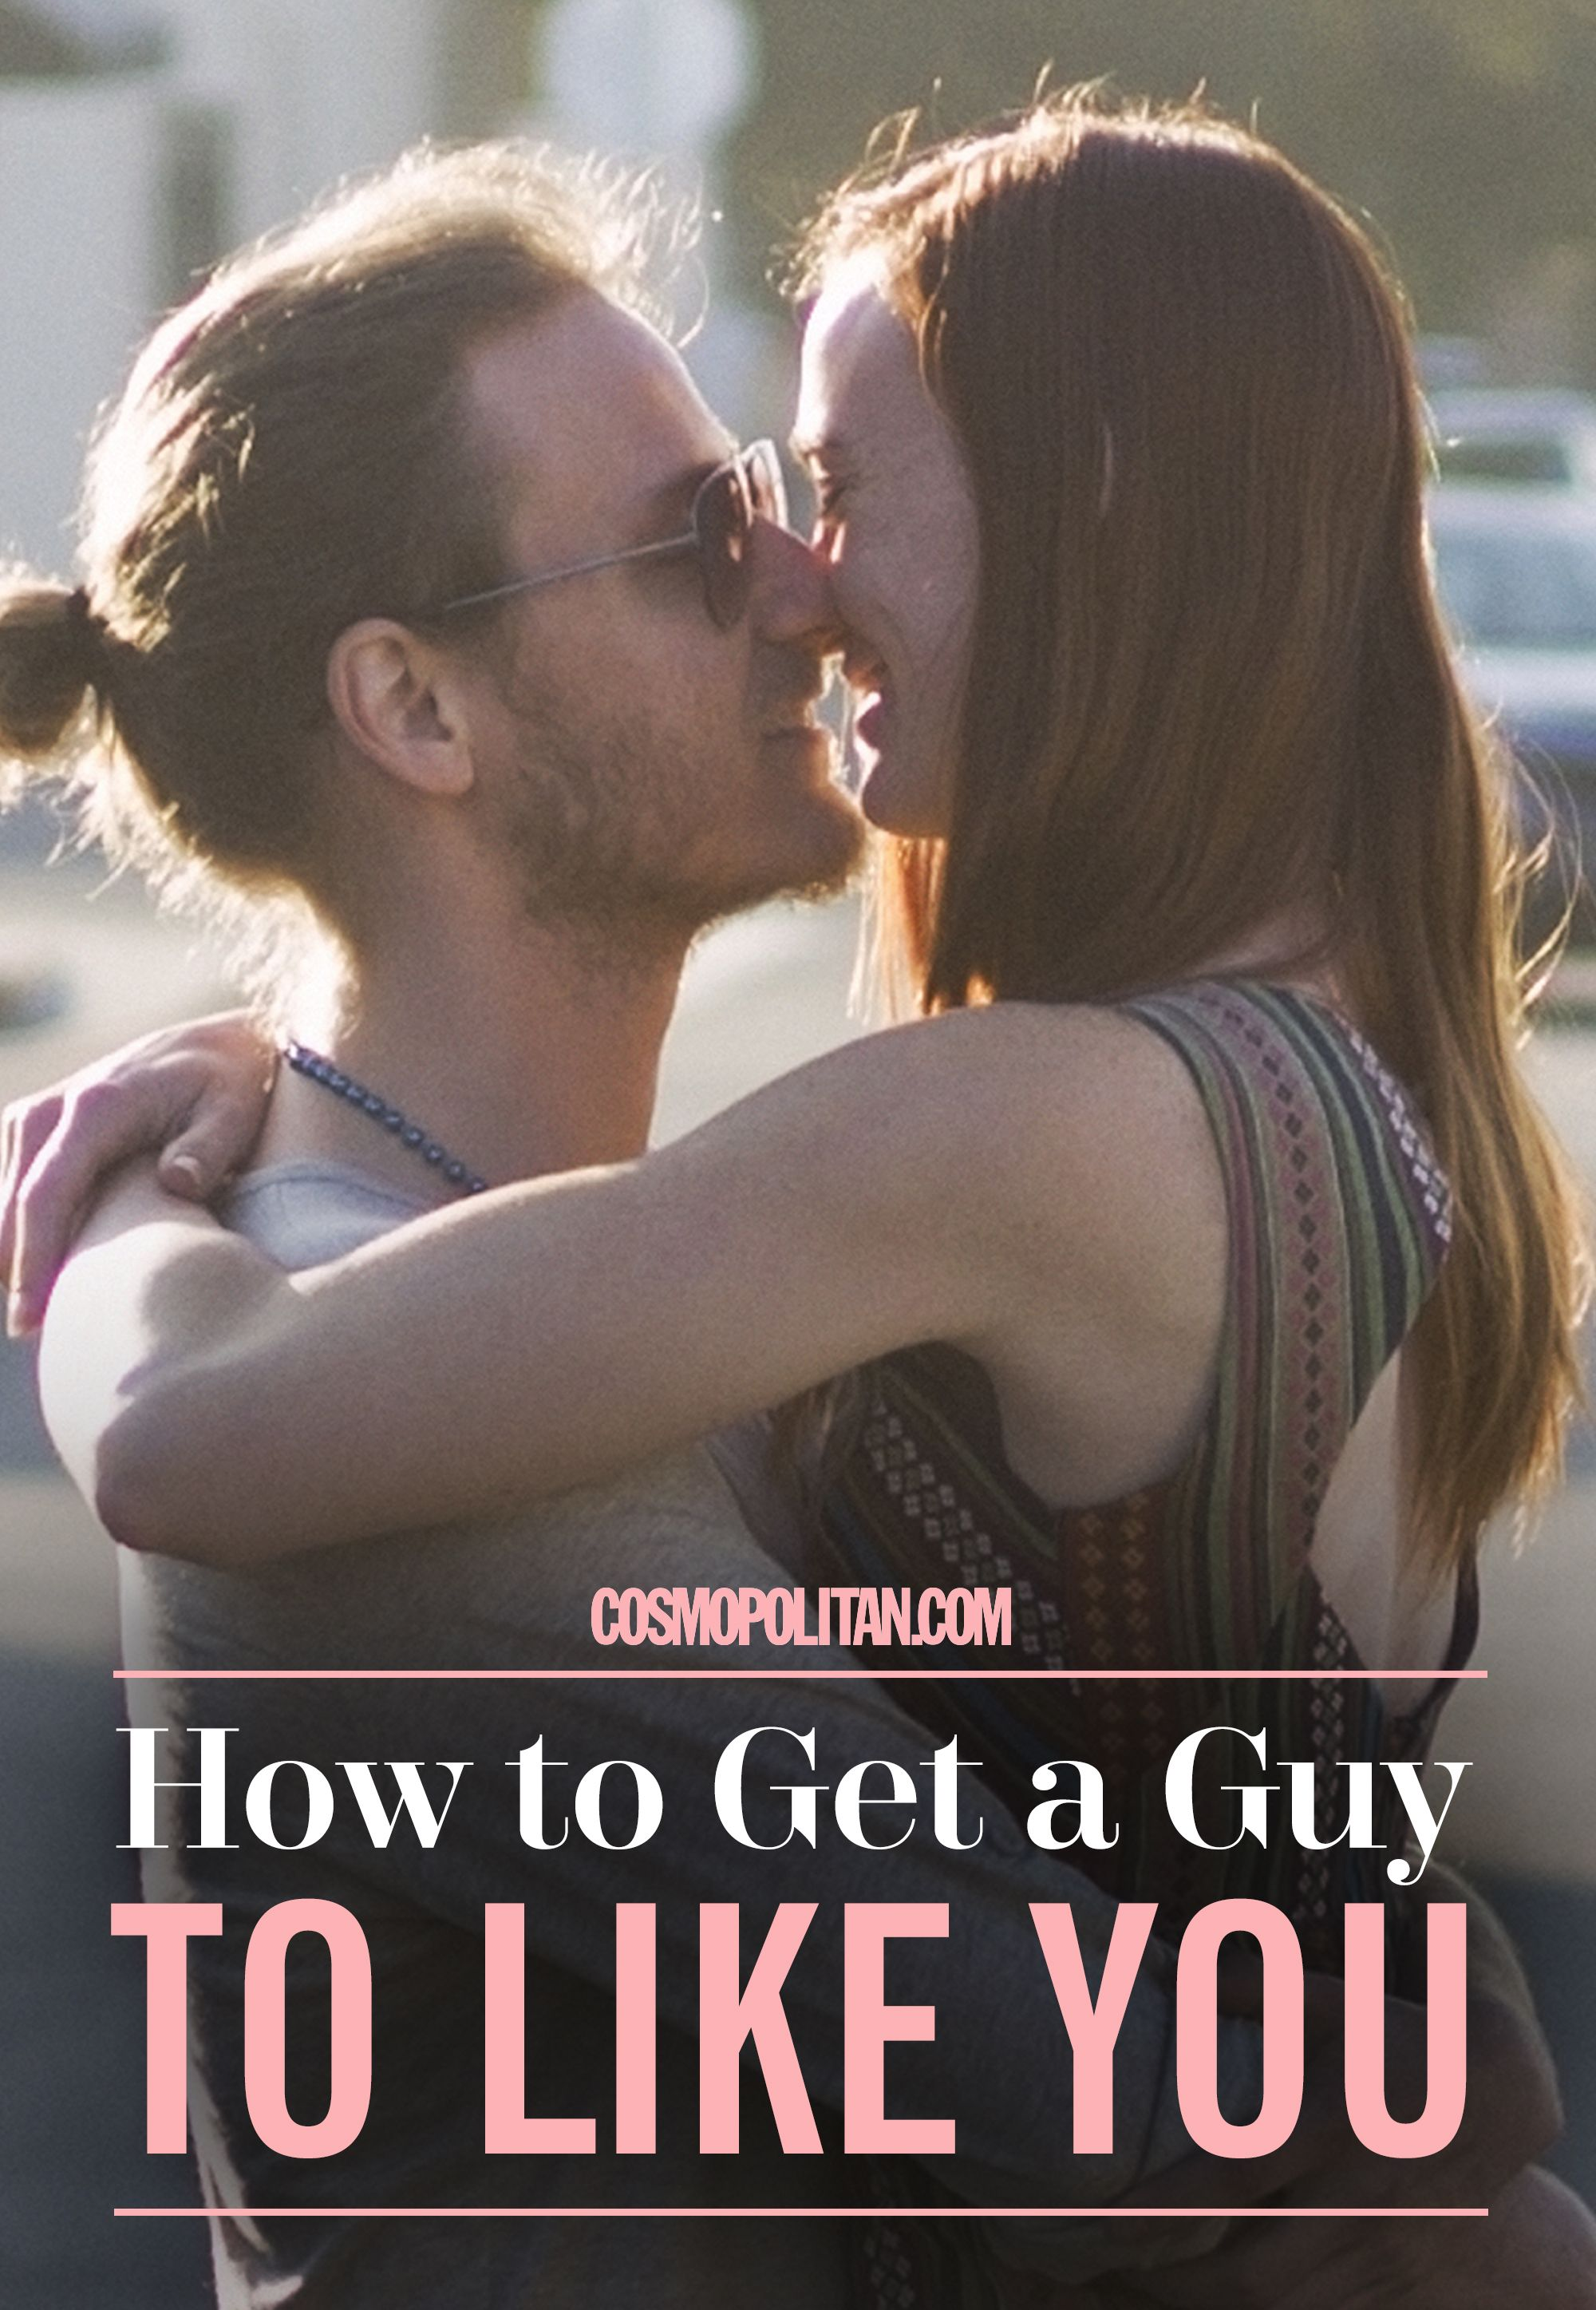 Can a girl ask a guy to hook up